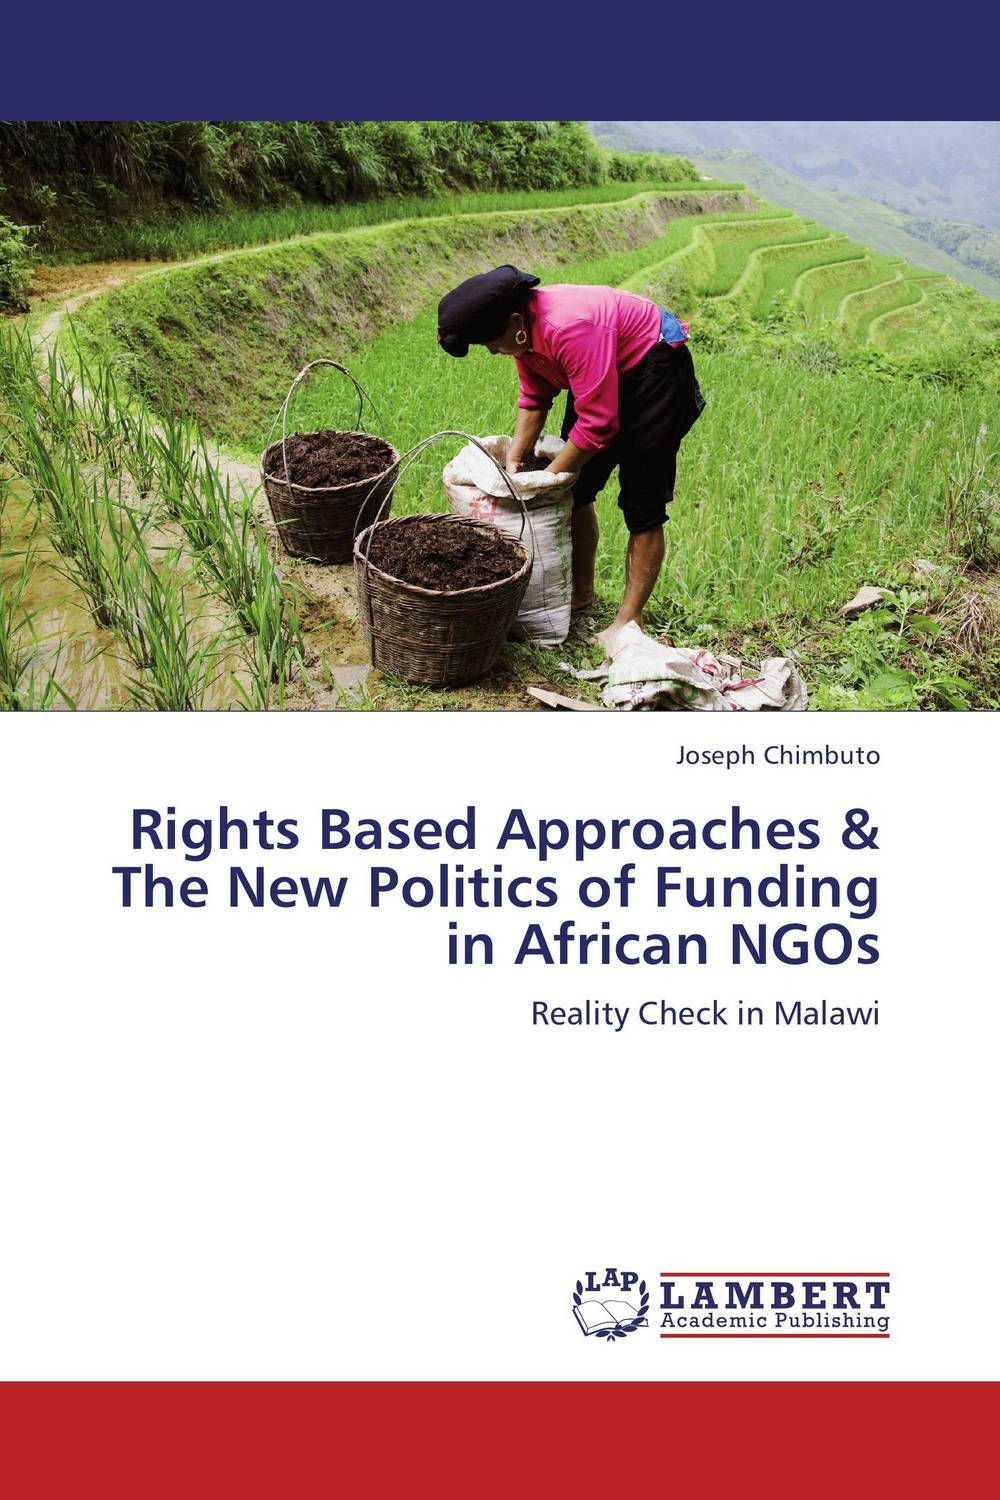 Rights Based Approaches & The New Politics of Funding in African NGOs